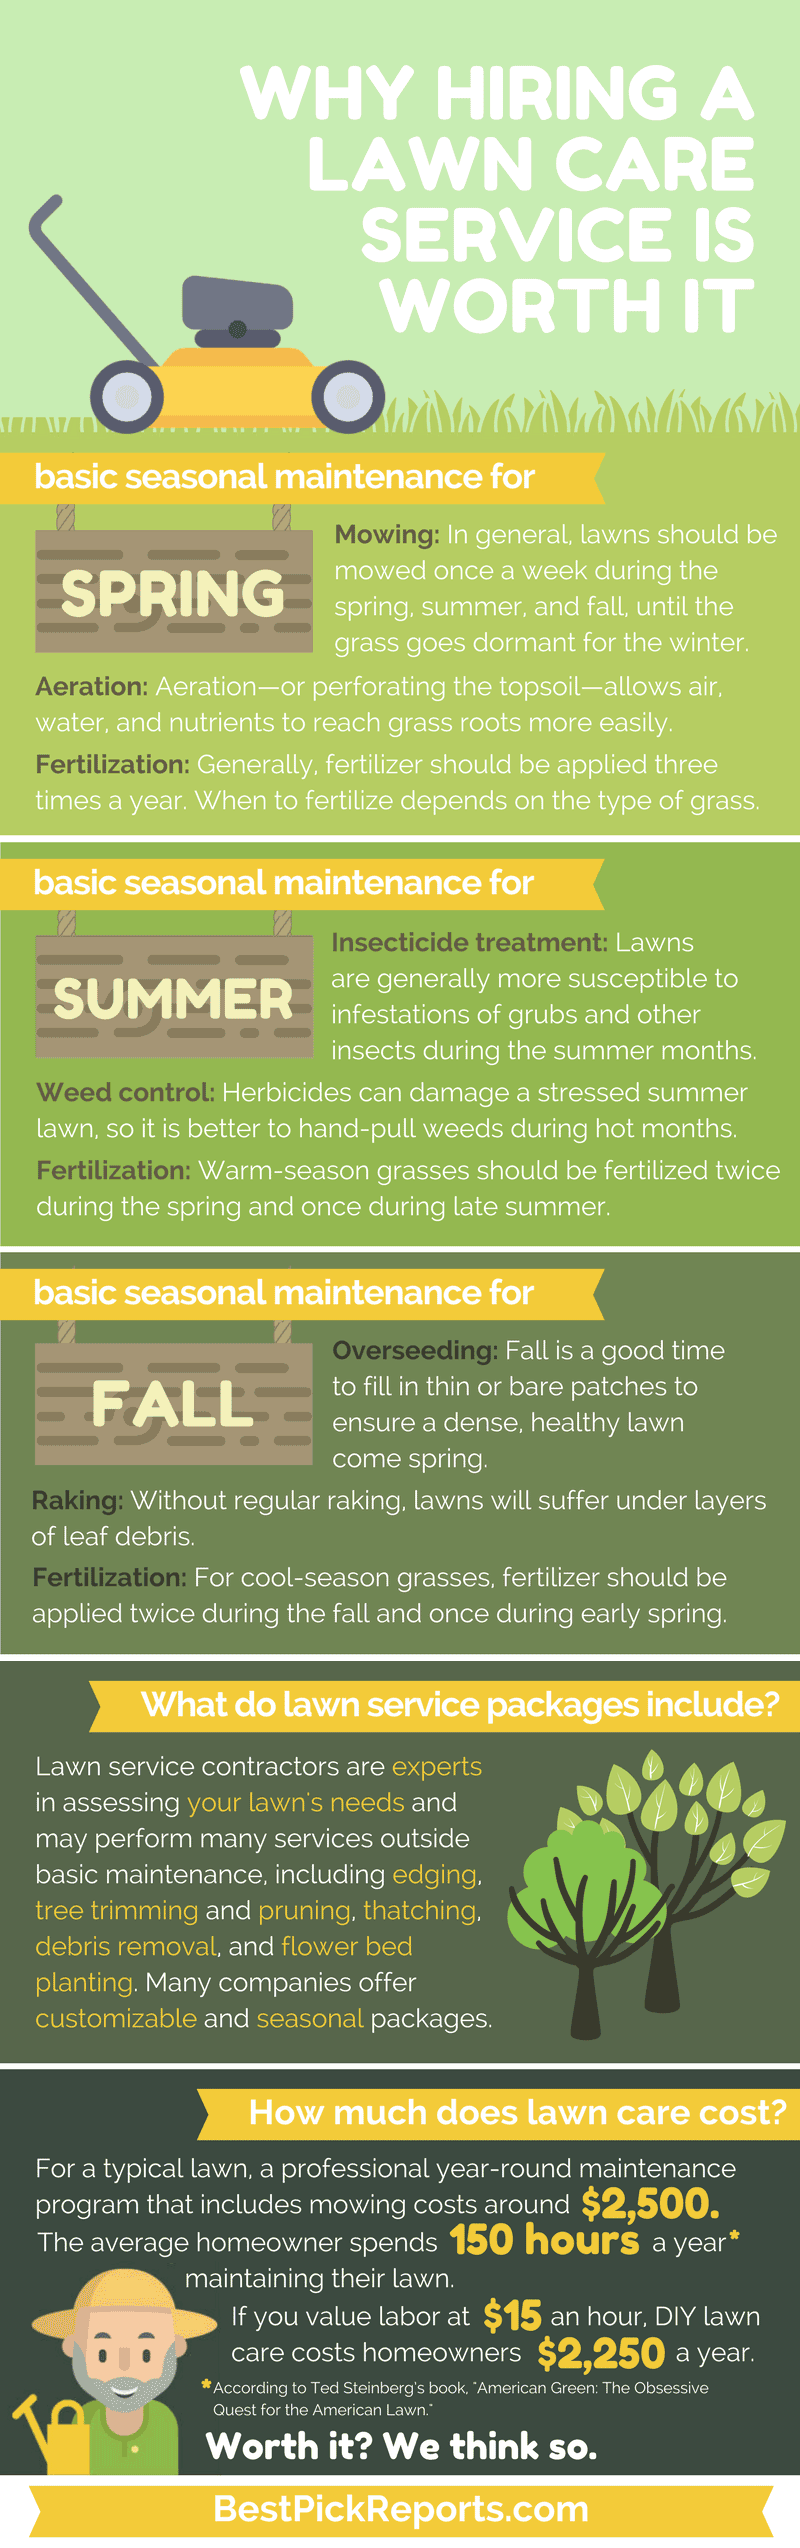 Infographic on Why Hiring a Lawn Care Service Is Worth It